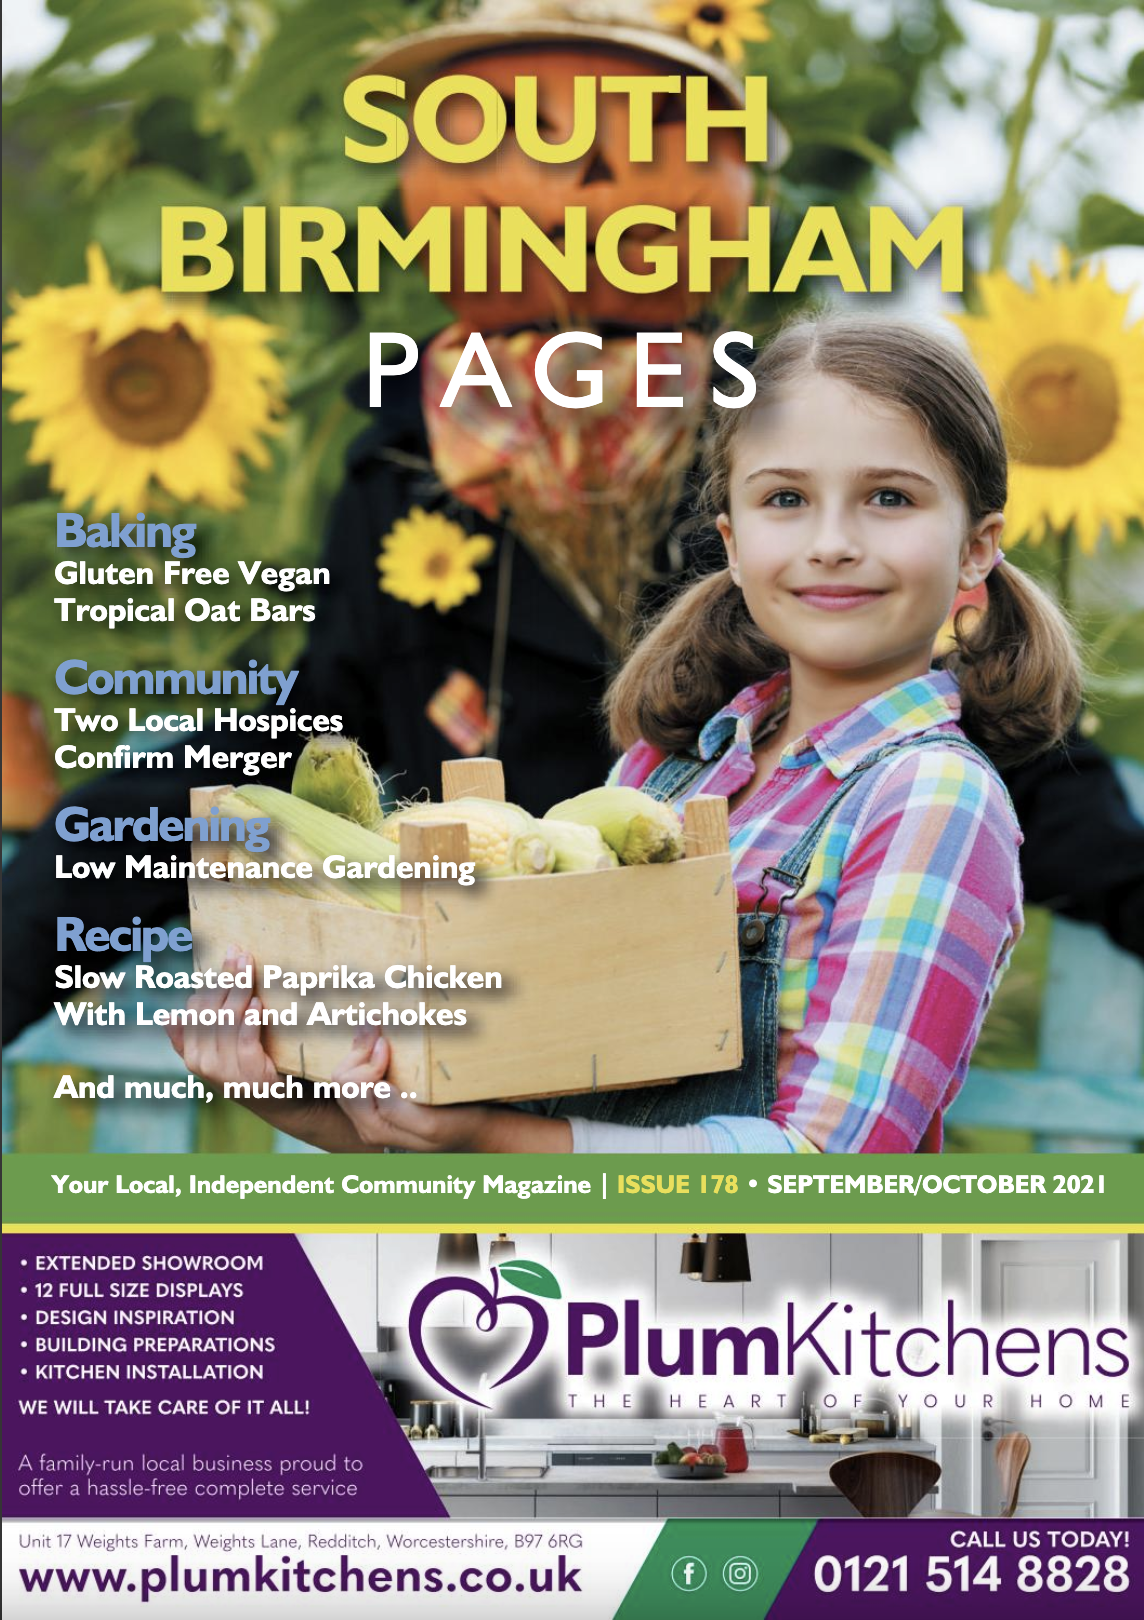 South Birmingham Pages Magazine September 2021